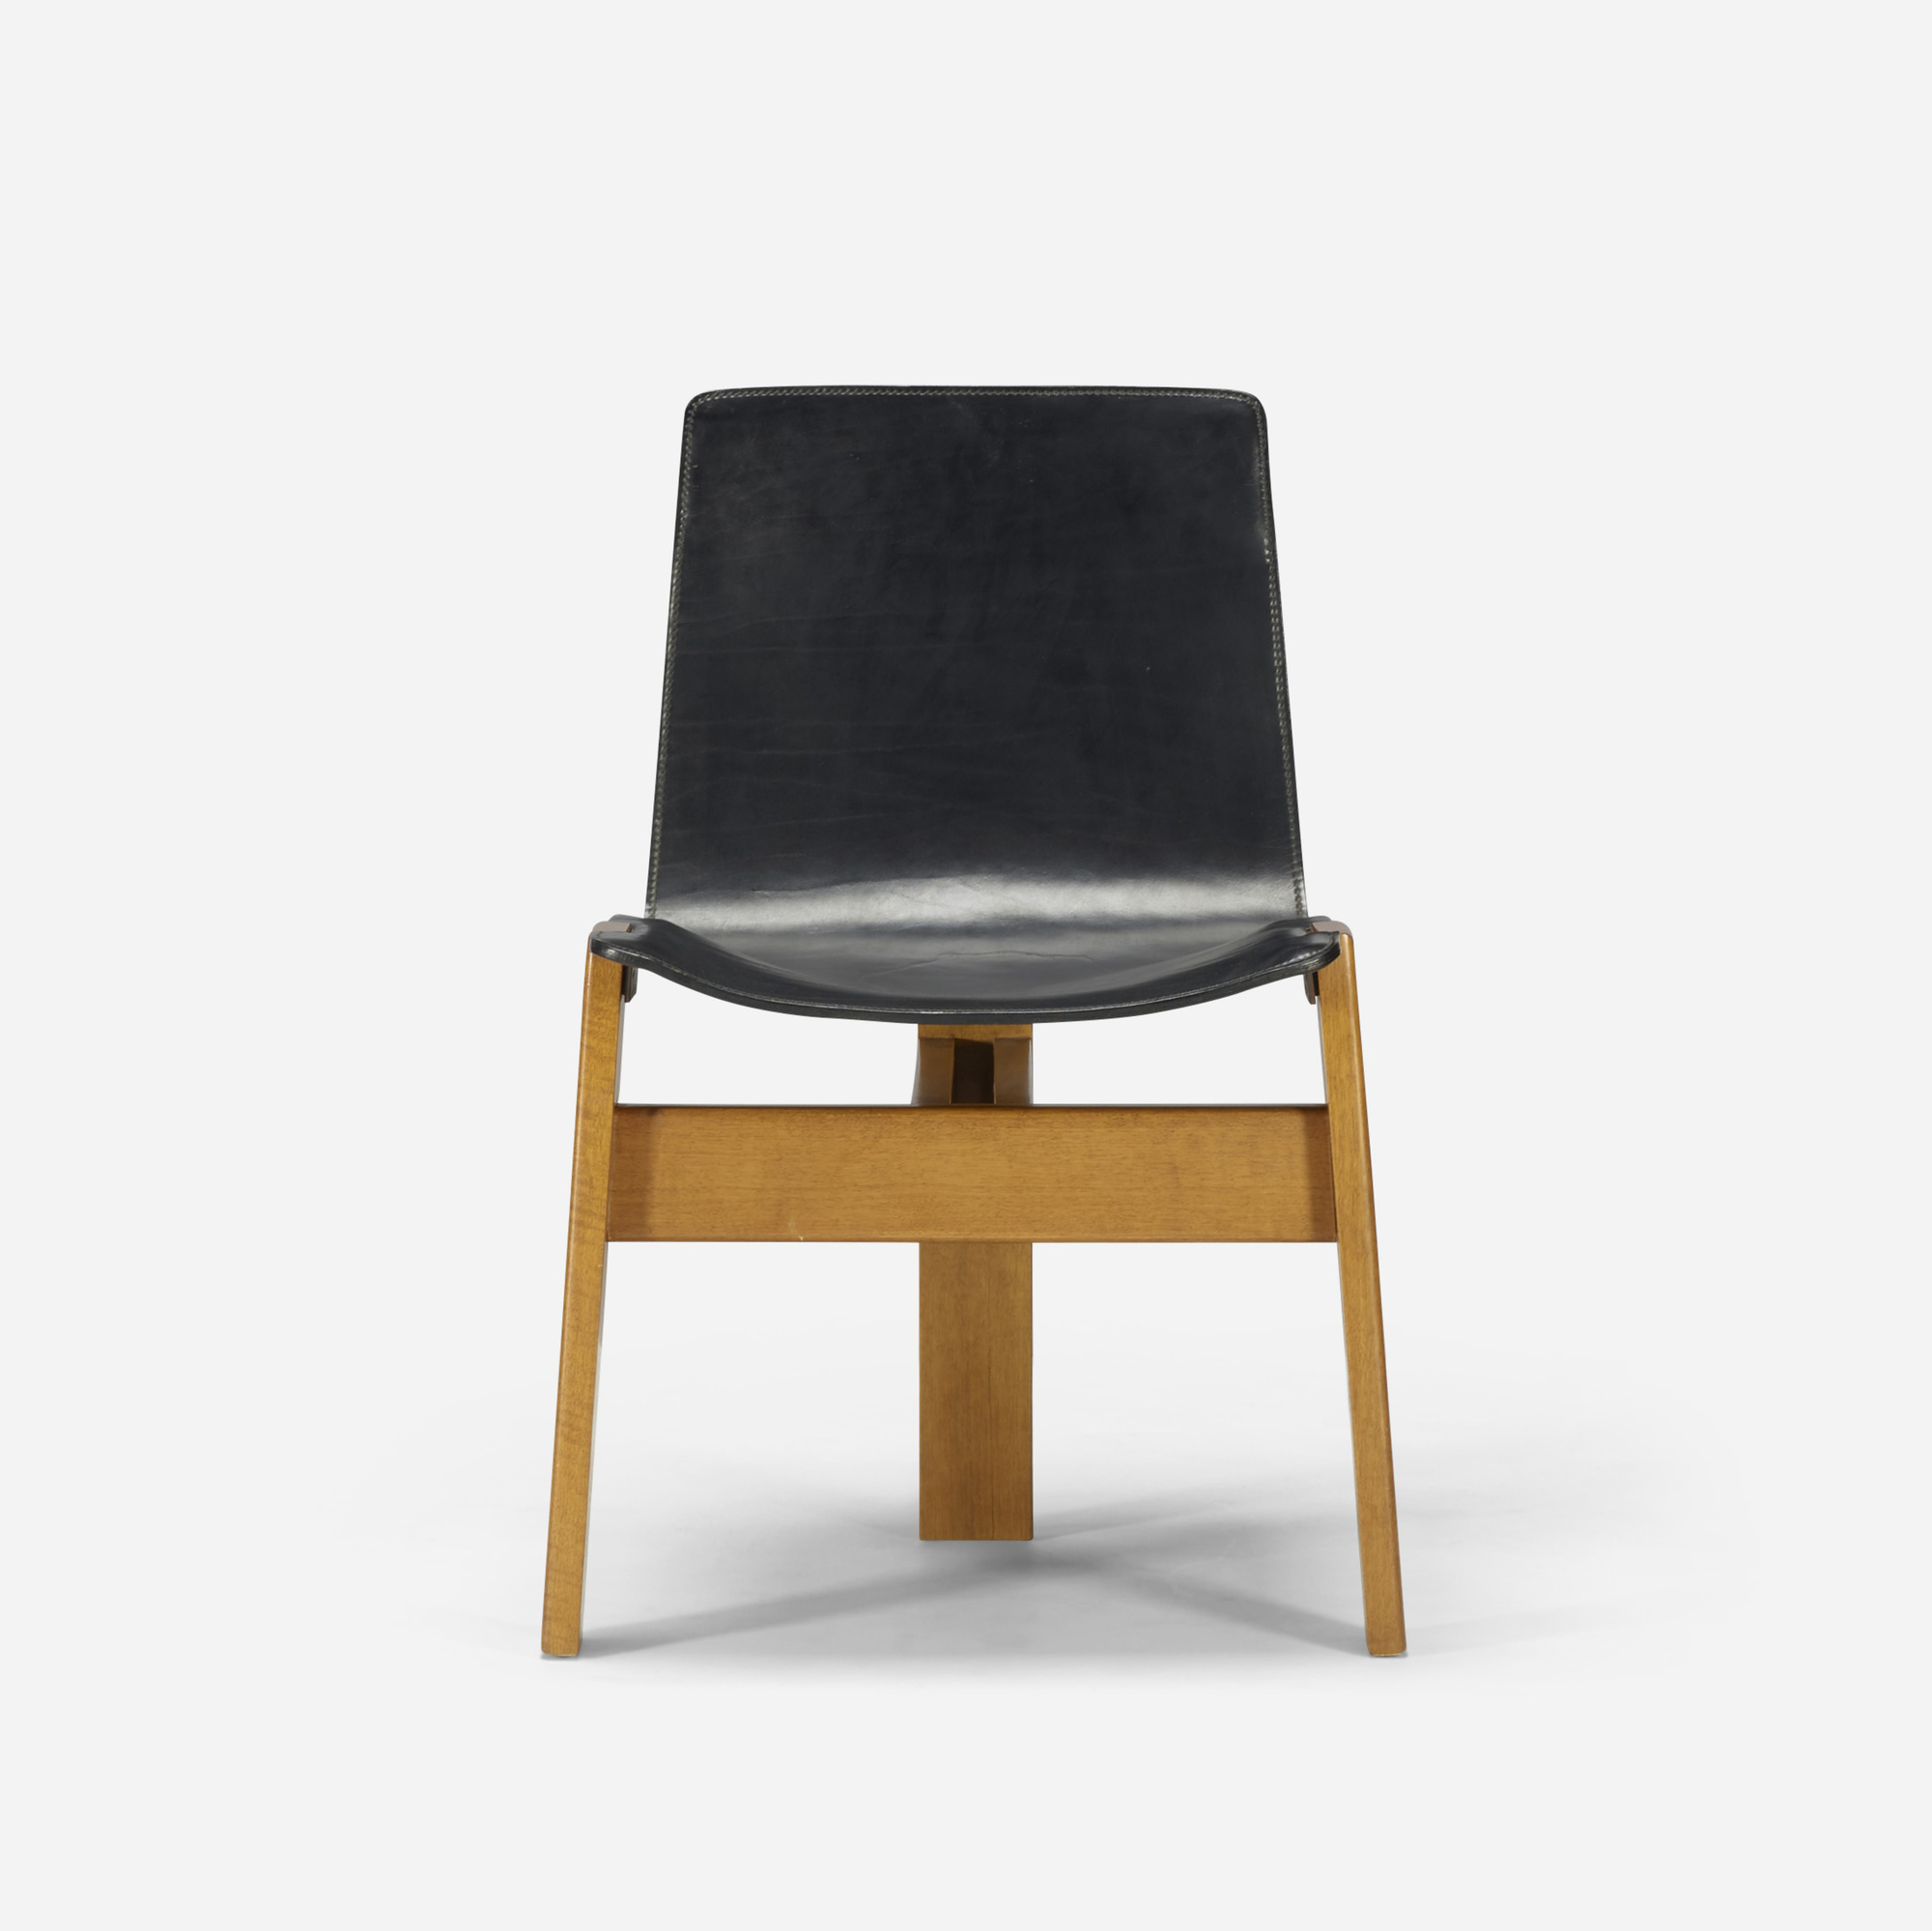 526: Angelo Mangiarotti / Tre 3 dining chair (3 of 3)